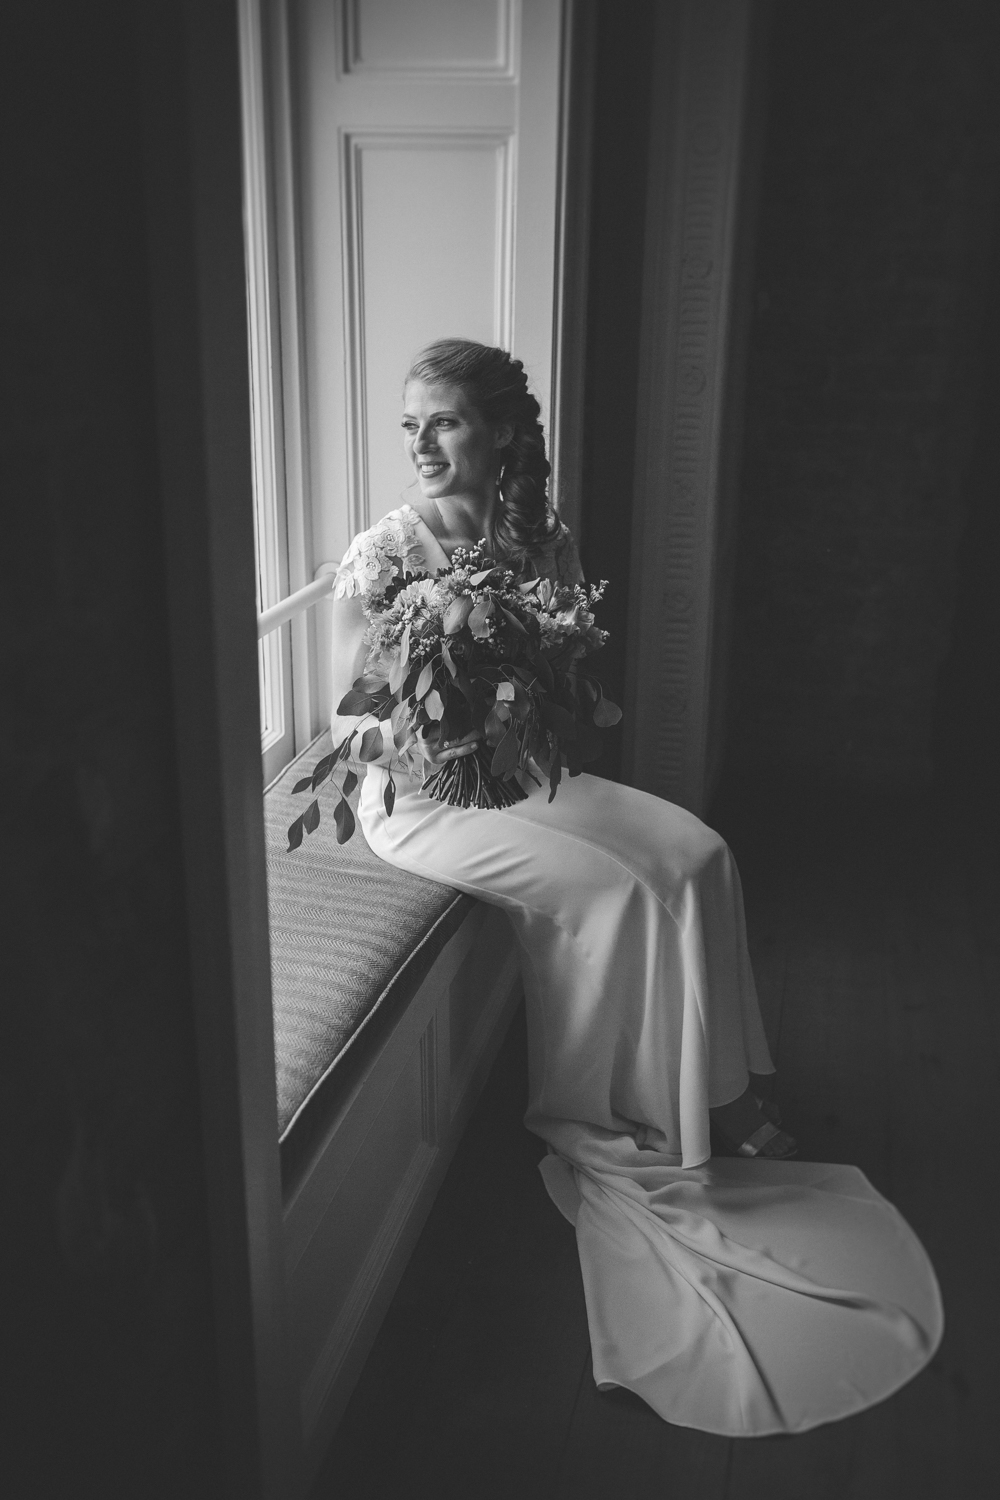 Powerscourt estate wedding-16.jpg